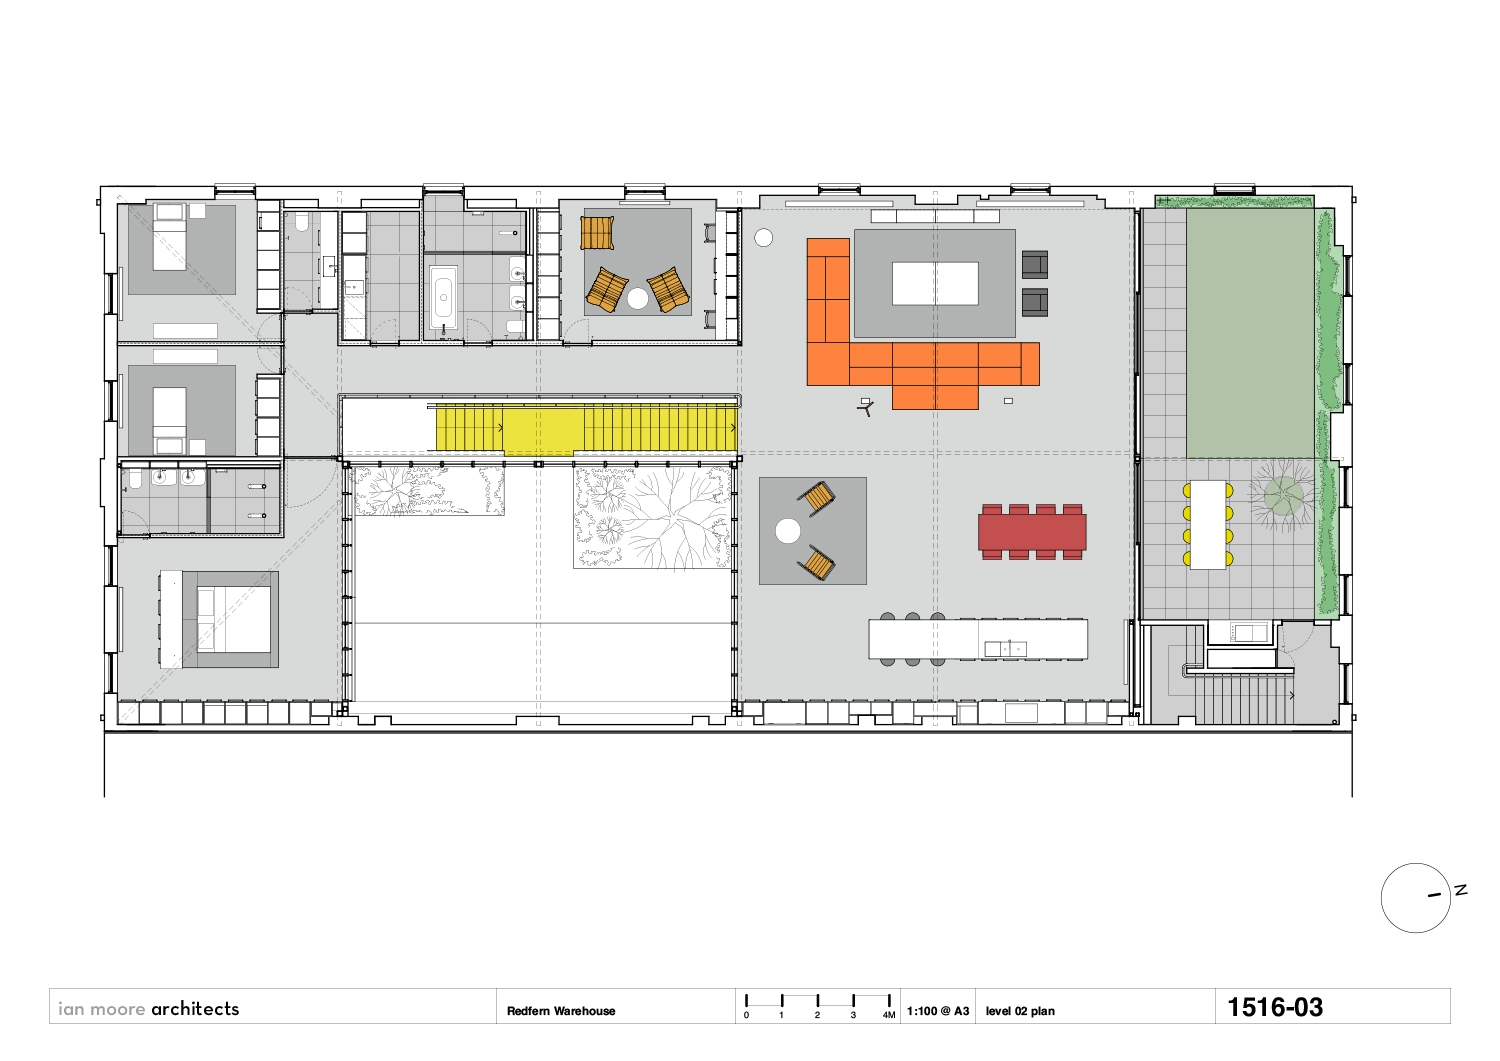 level 02 plan Ian Moore Architects}